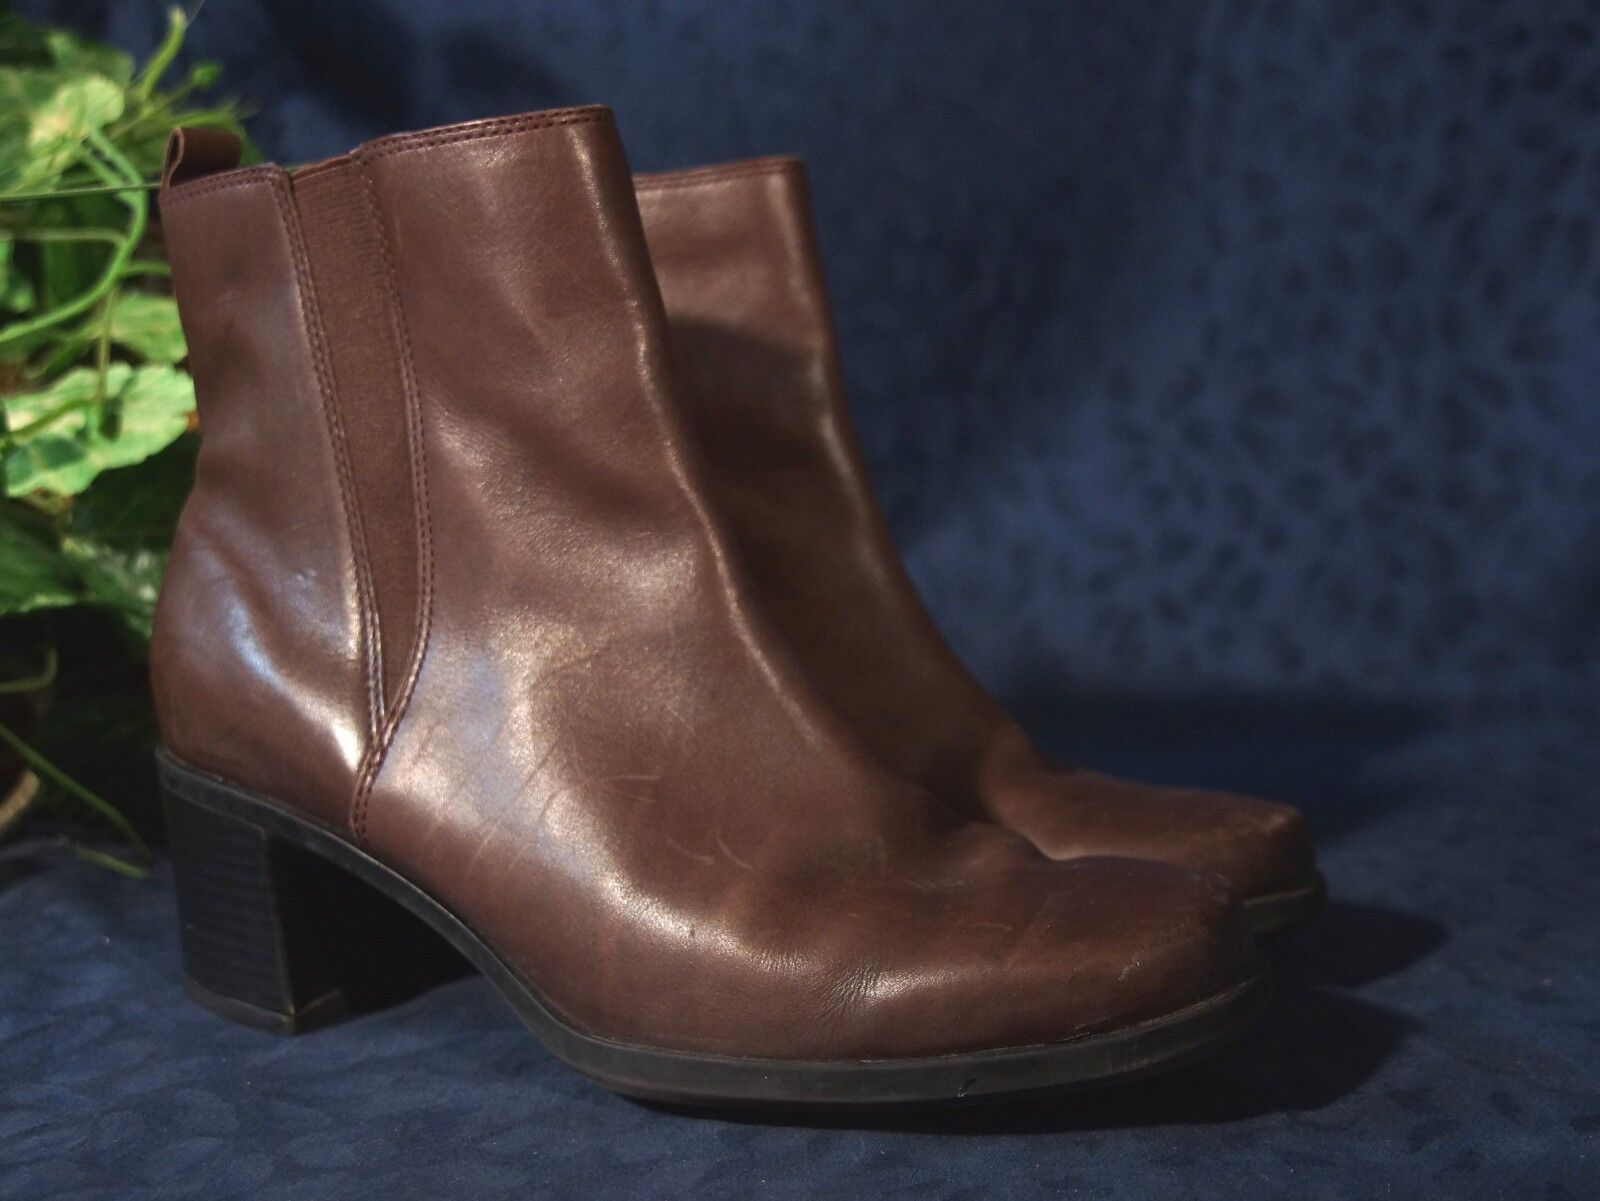 Extremely Nice Medium Brown Leather CLARKS Boots Side Zip  Ankle Boots CLARKS Sz 7.5 M 814852